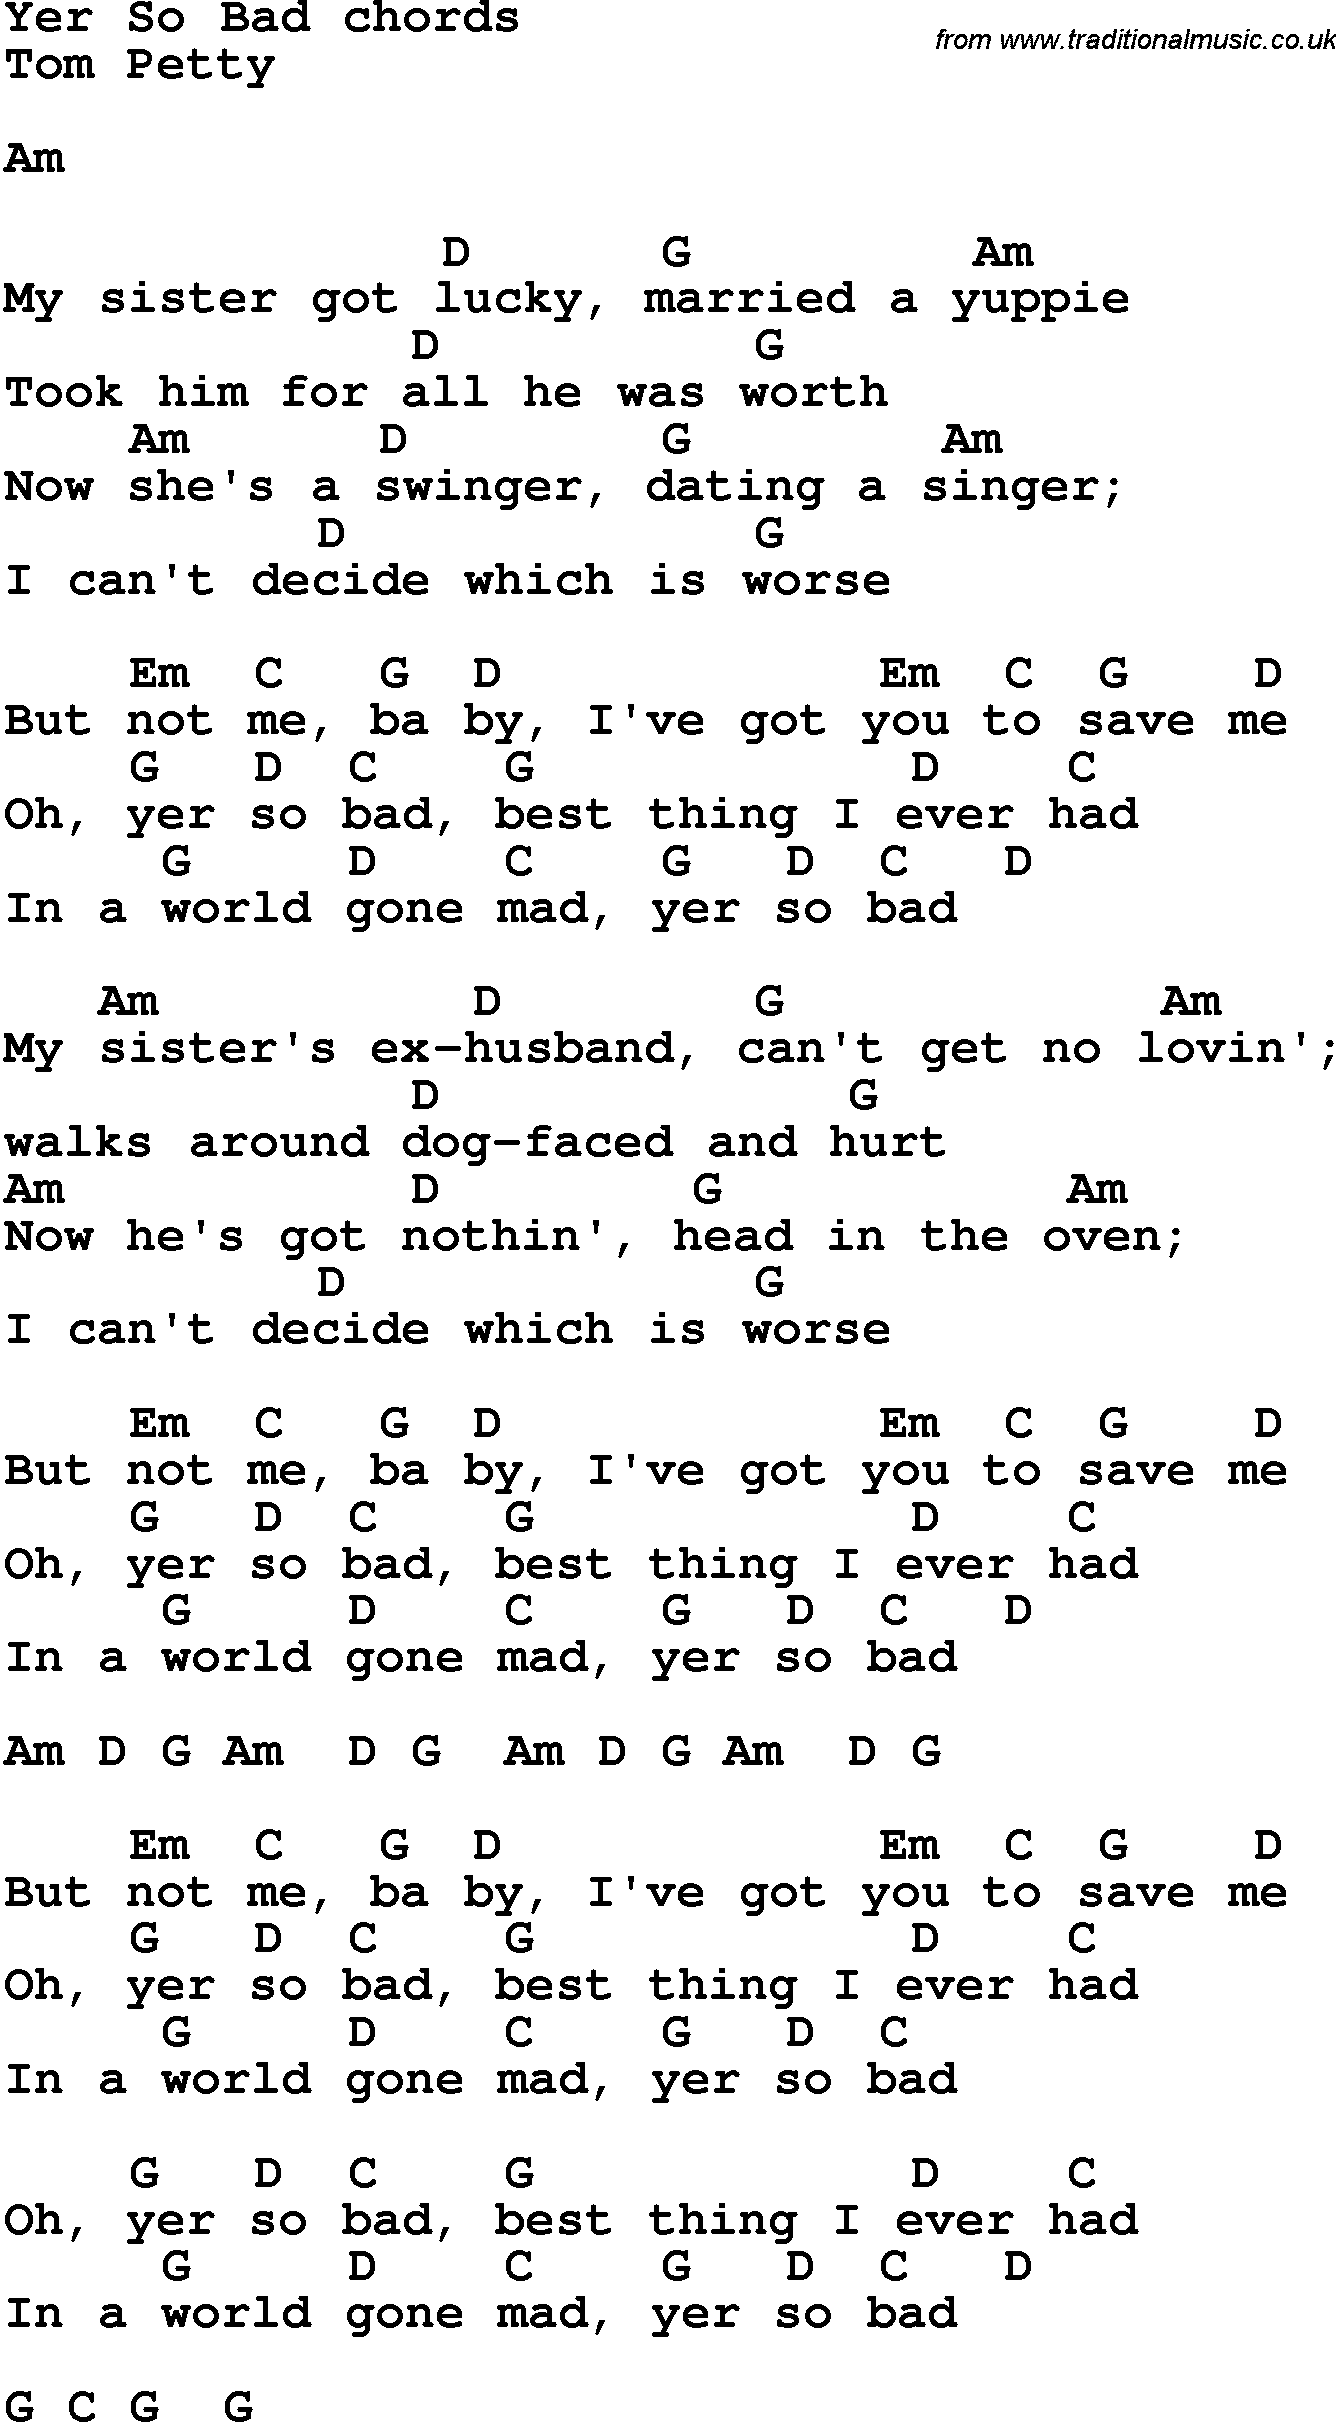 Song Lyrics With Guitar Chords For Yer So Bad